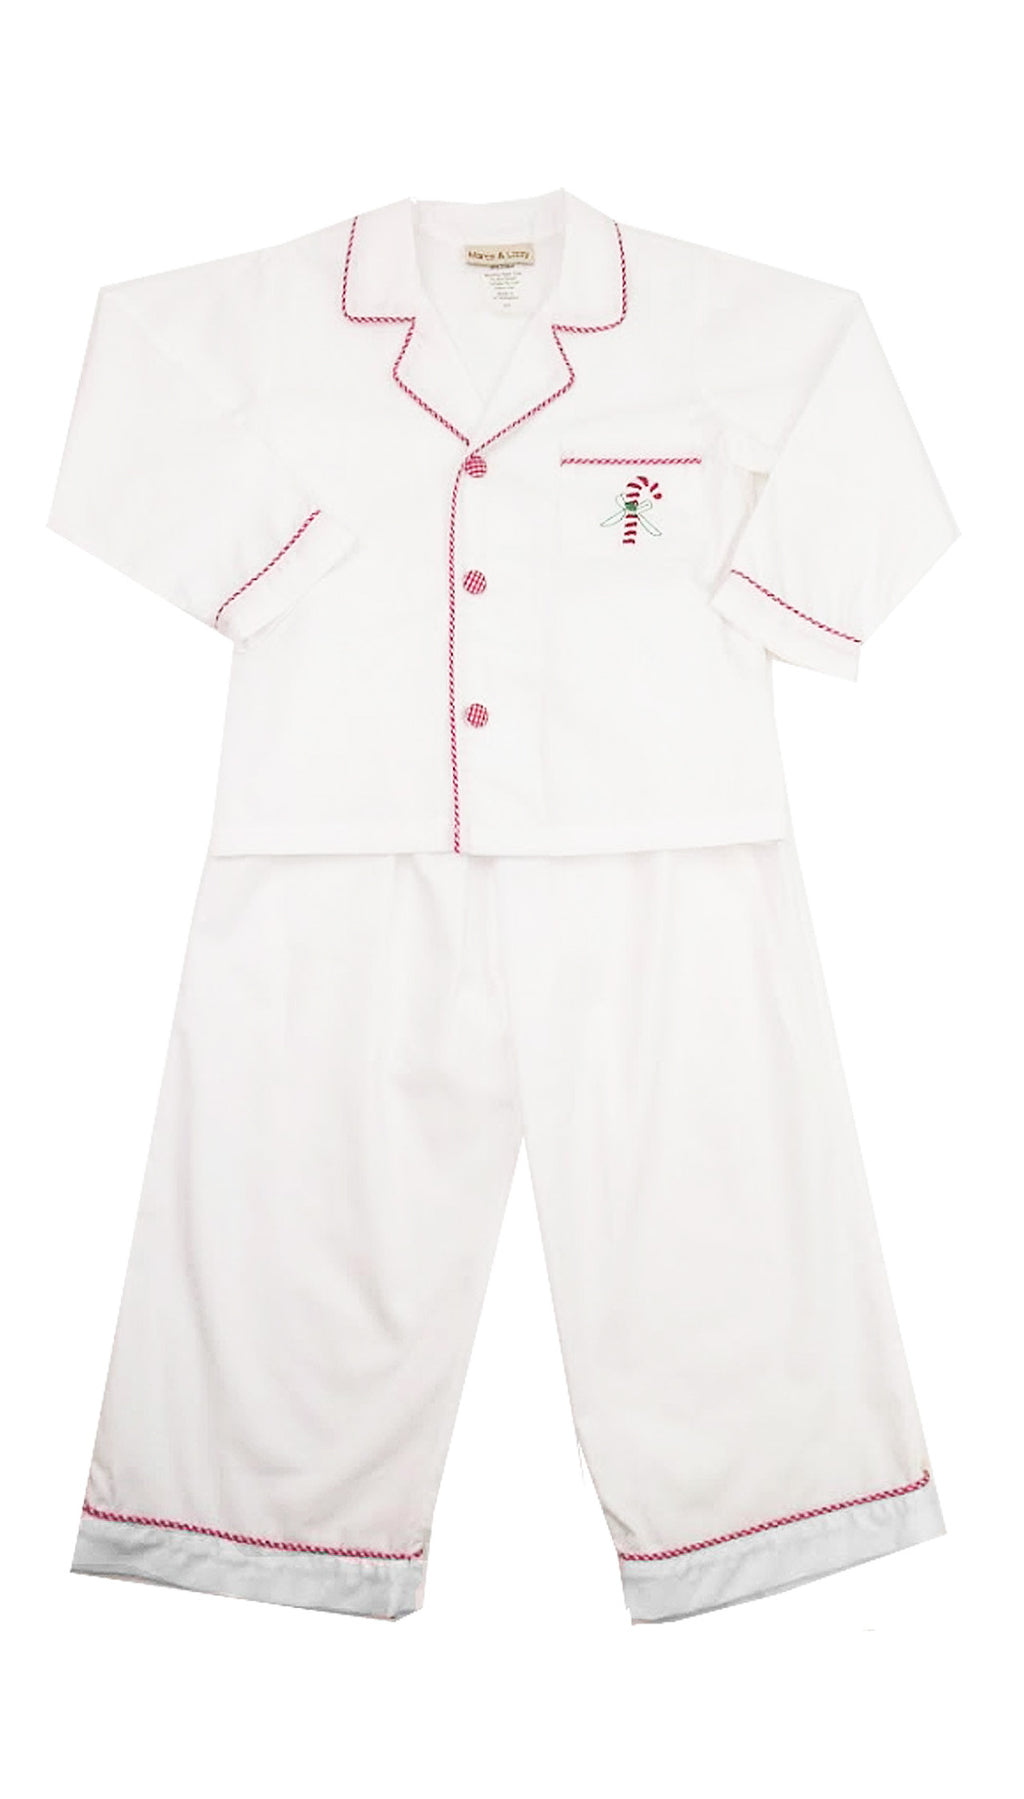 White Candy Cane Boy's Pjs - Little Threads Inc. Children's Clothing